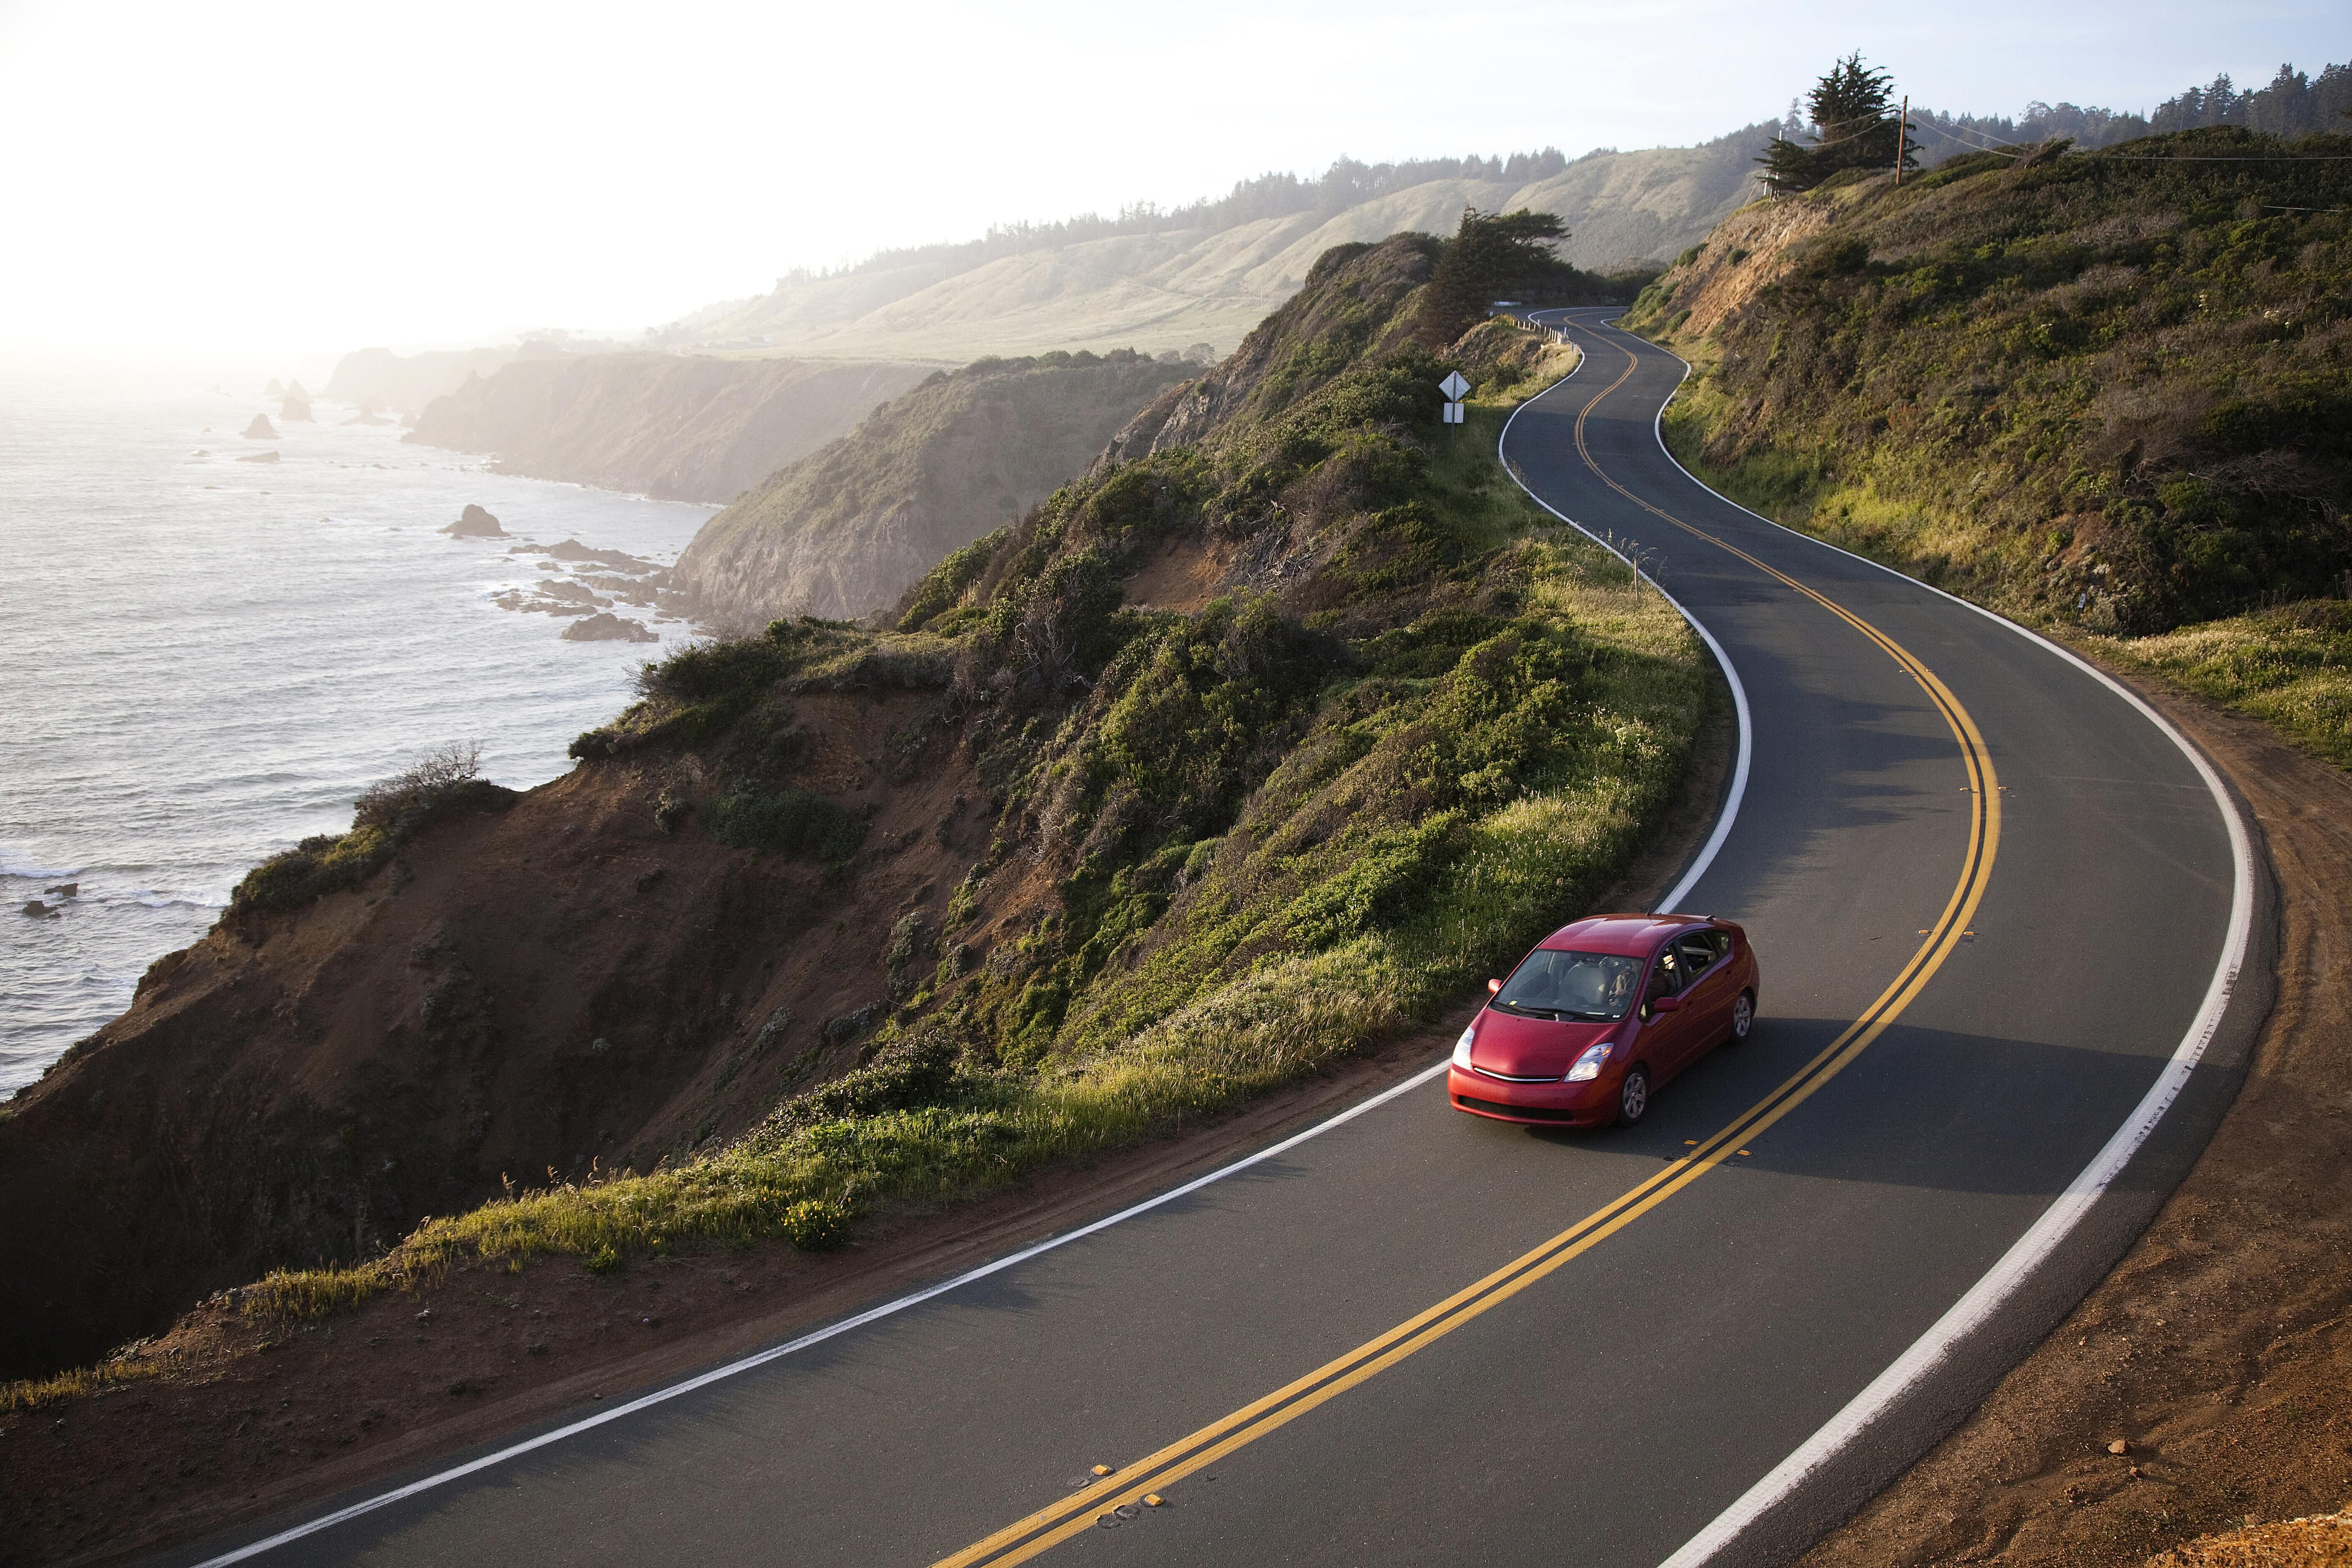 A red car drives on a highway near the Pacific Ocean.